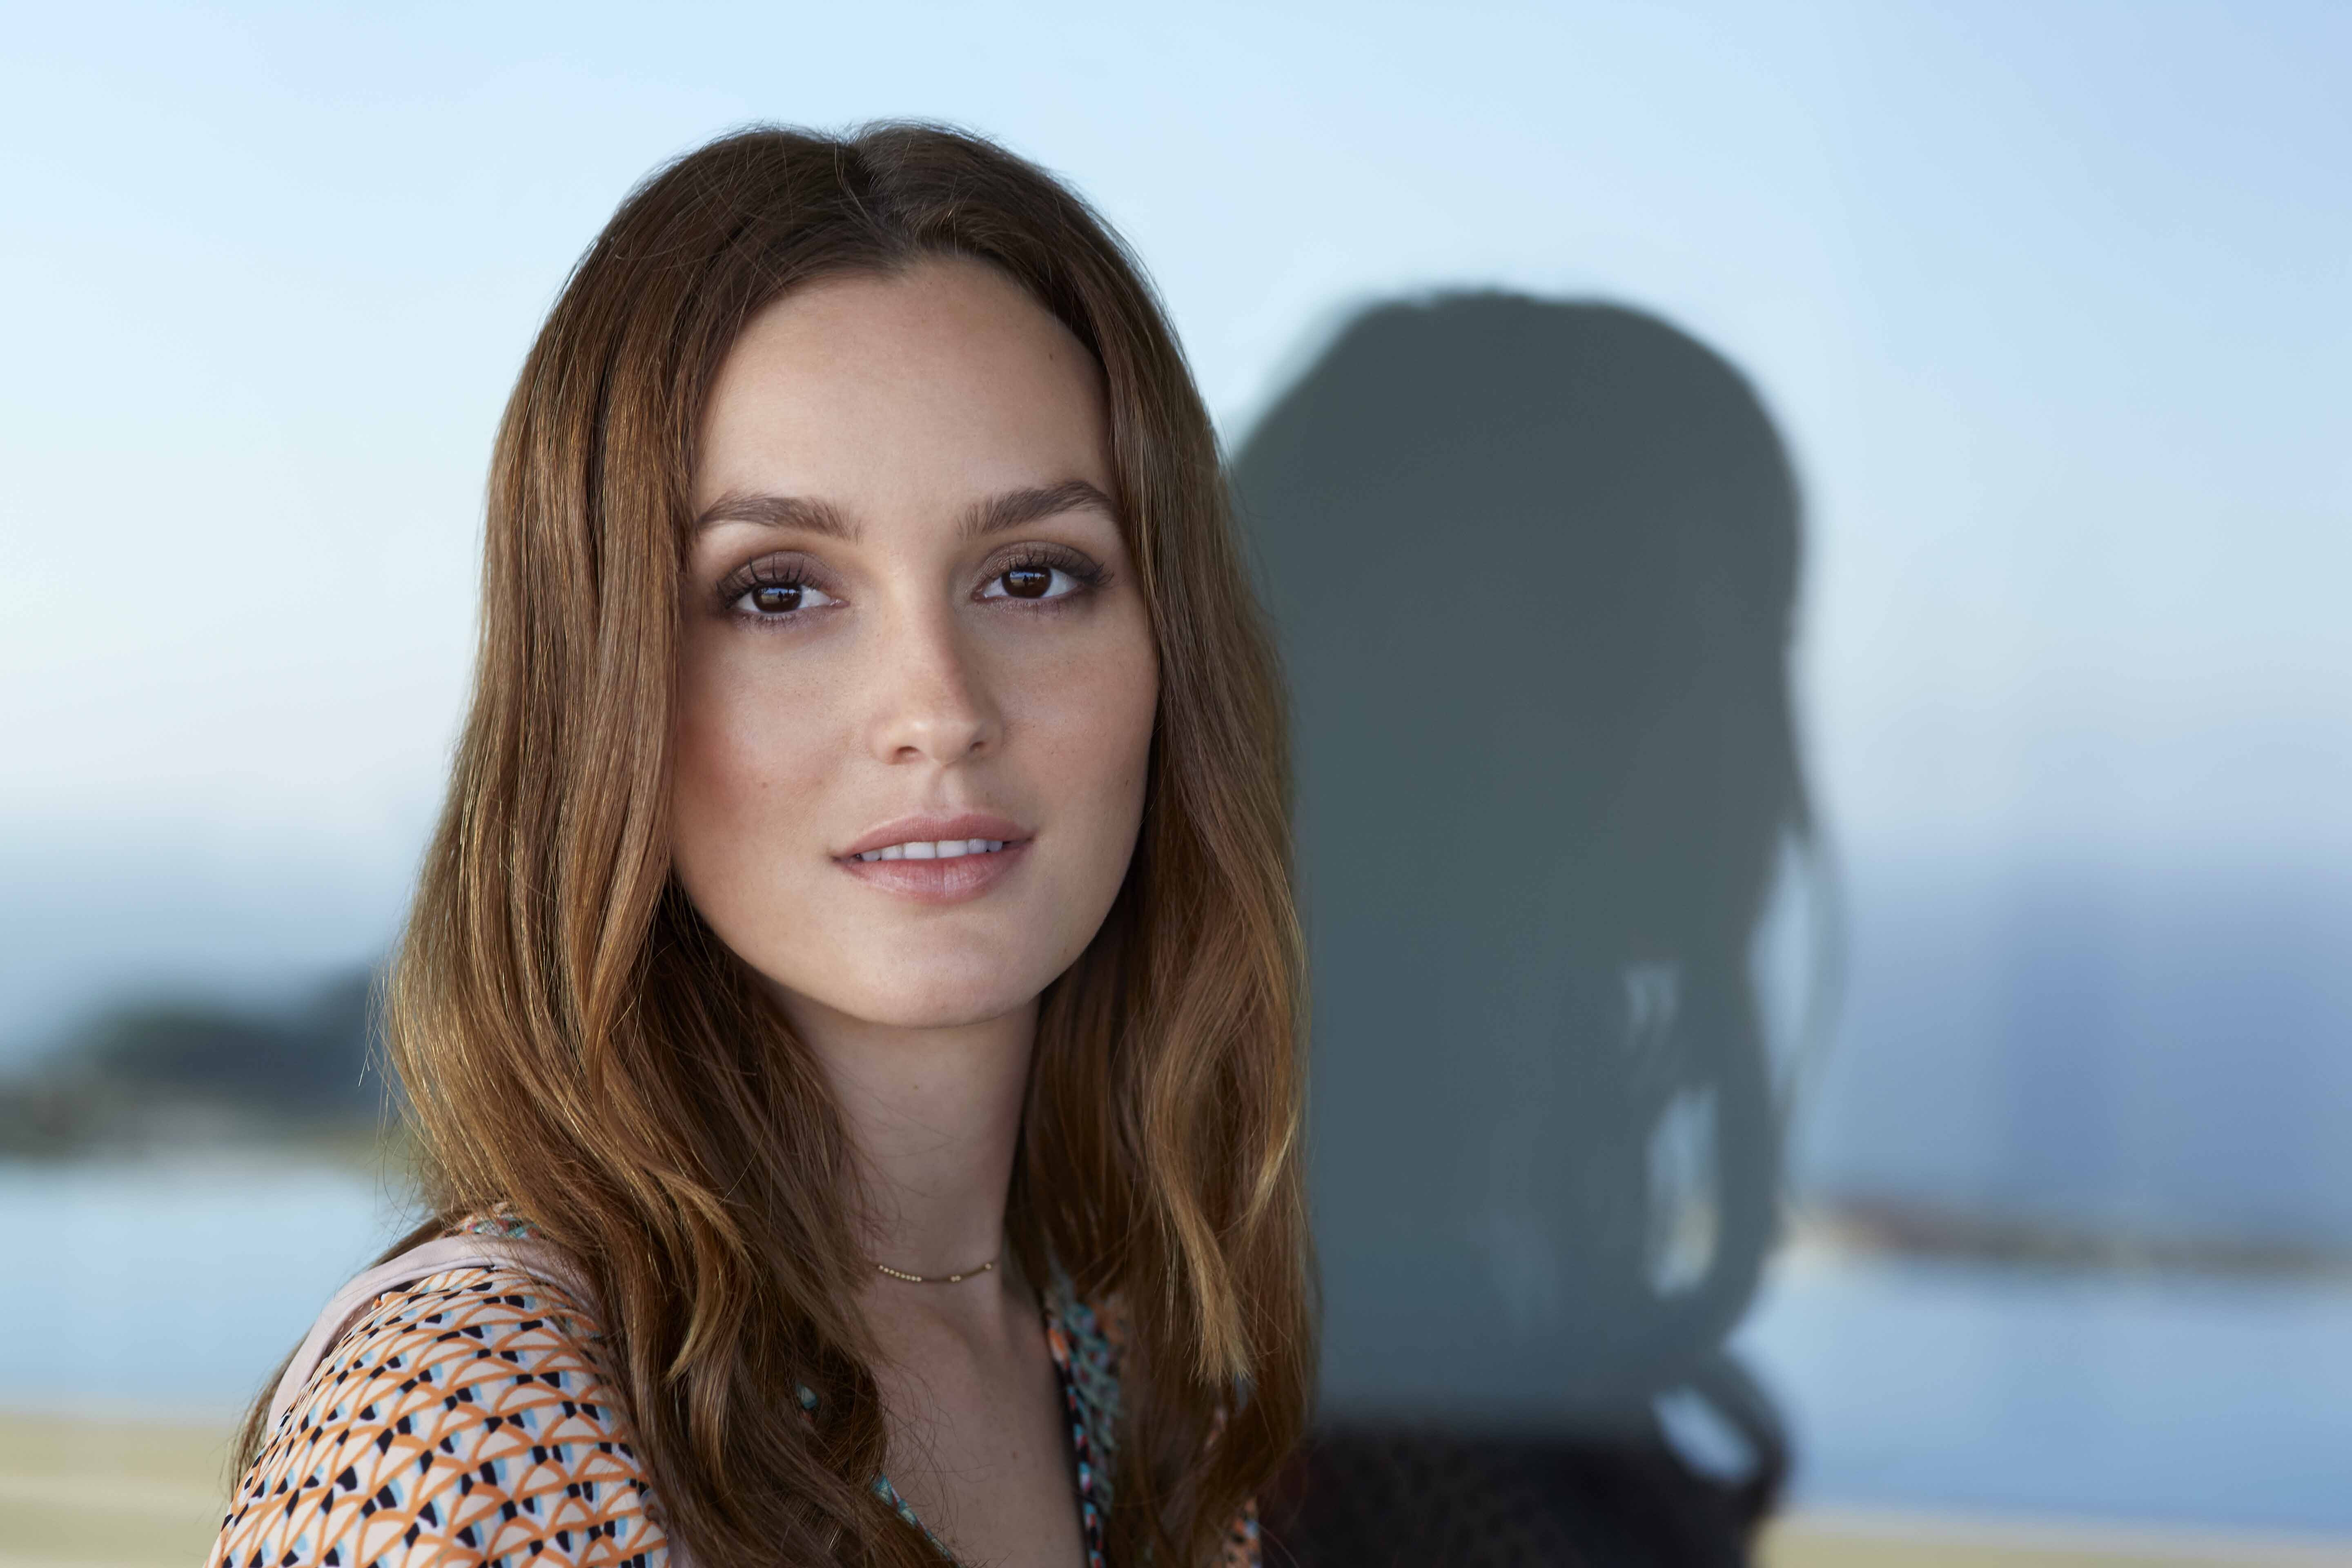 4k Wallpaper 3d 3840x2400 Leighton Meester 2017 Hd Music 4k Wallpapers Images